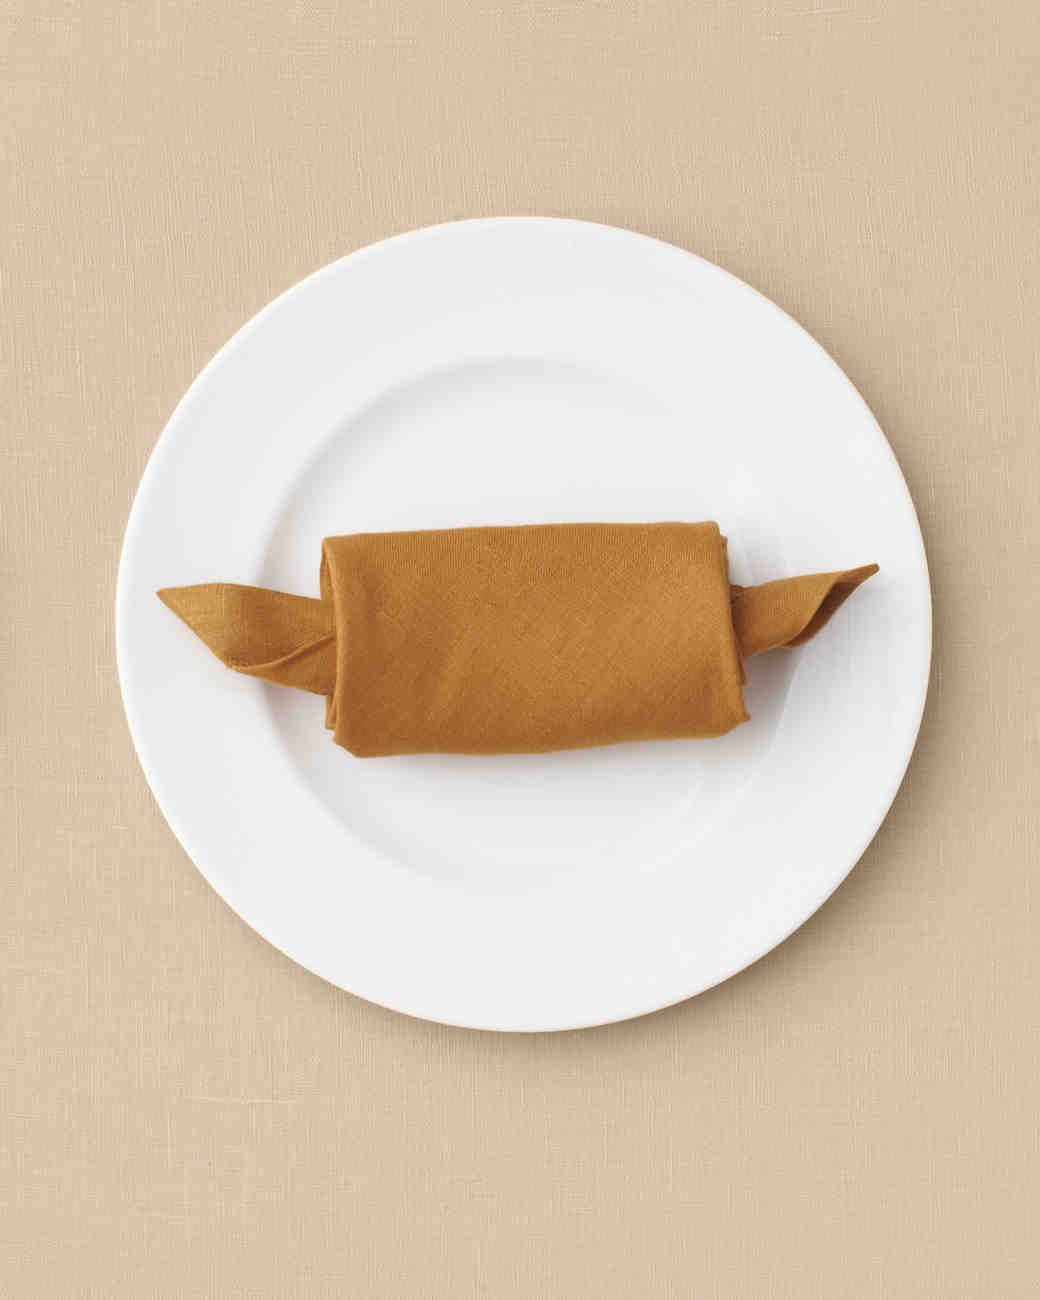 Napkin Folding Ideas For Weddings: 7 Ways To Fold A Table Napkin For Your Big Day And Every